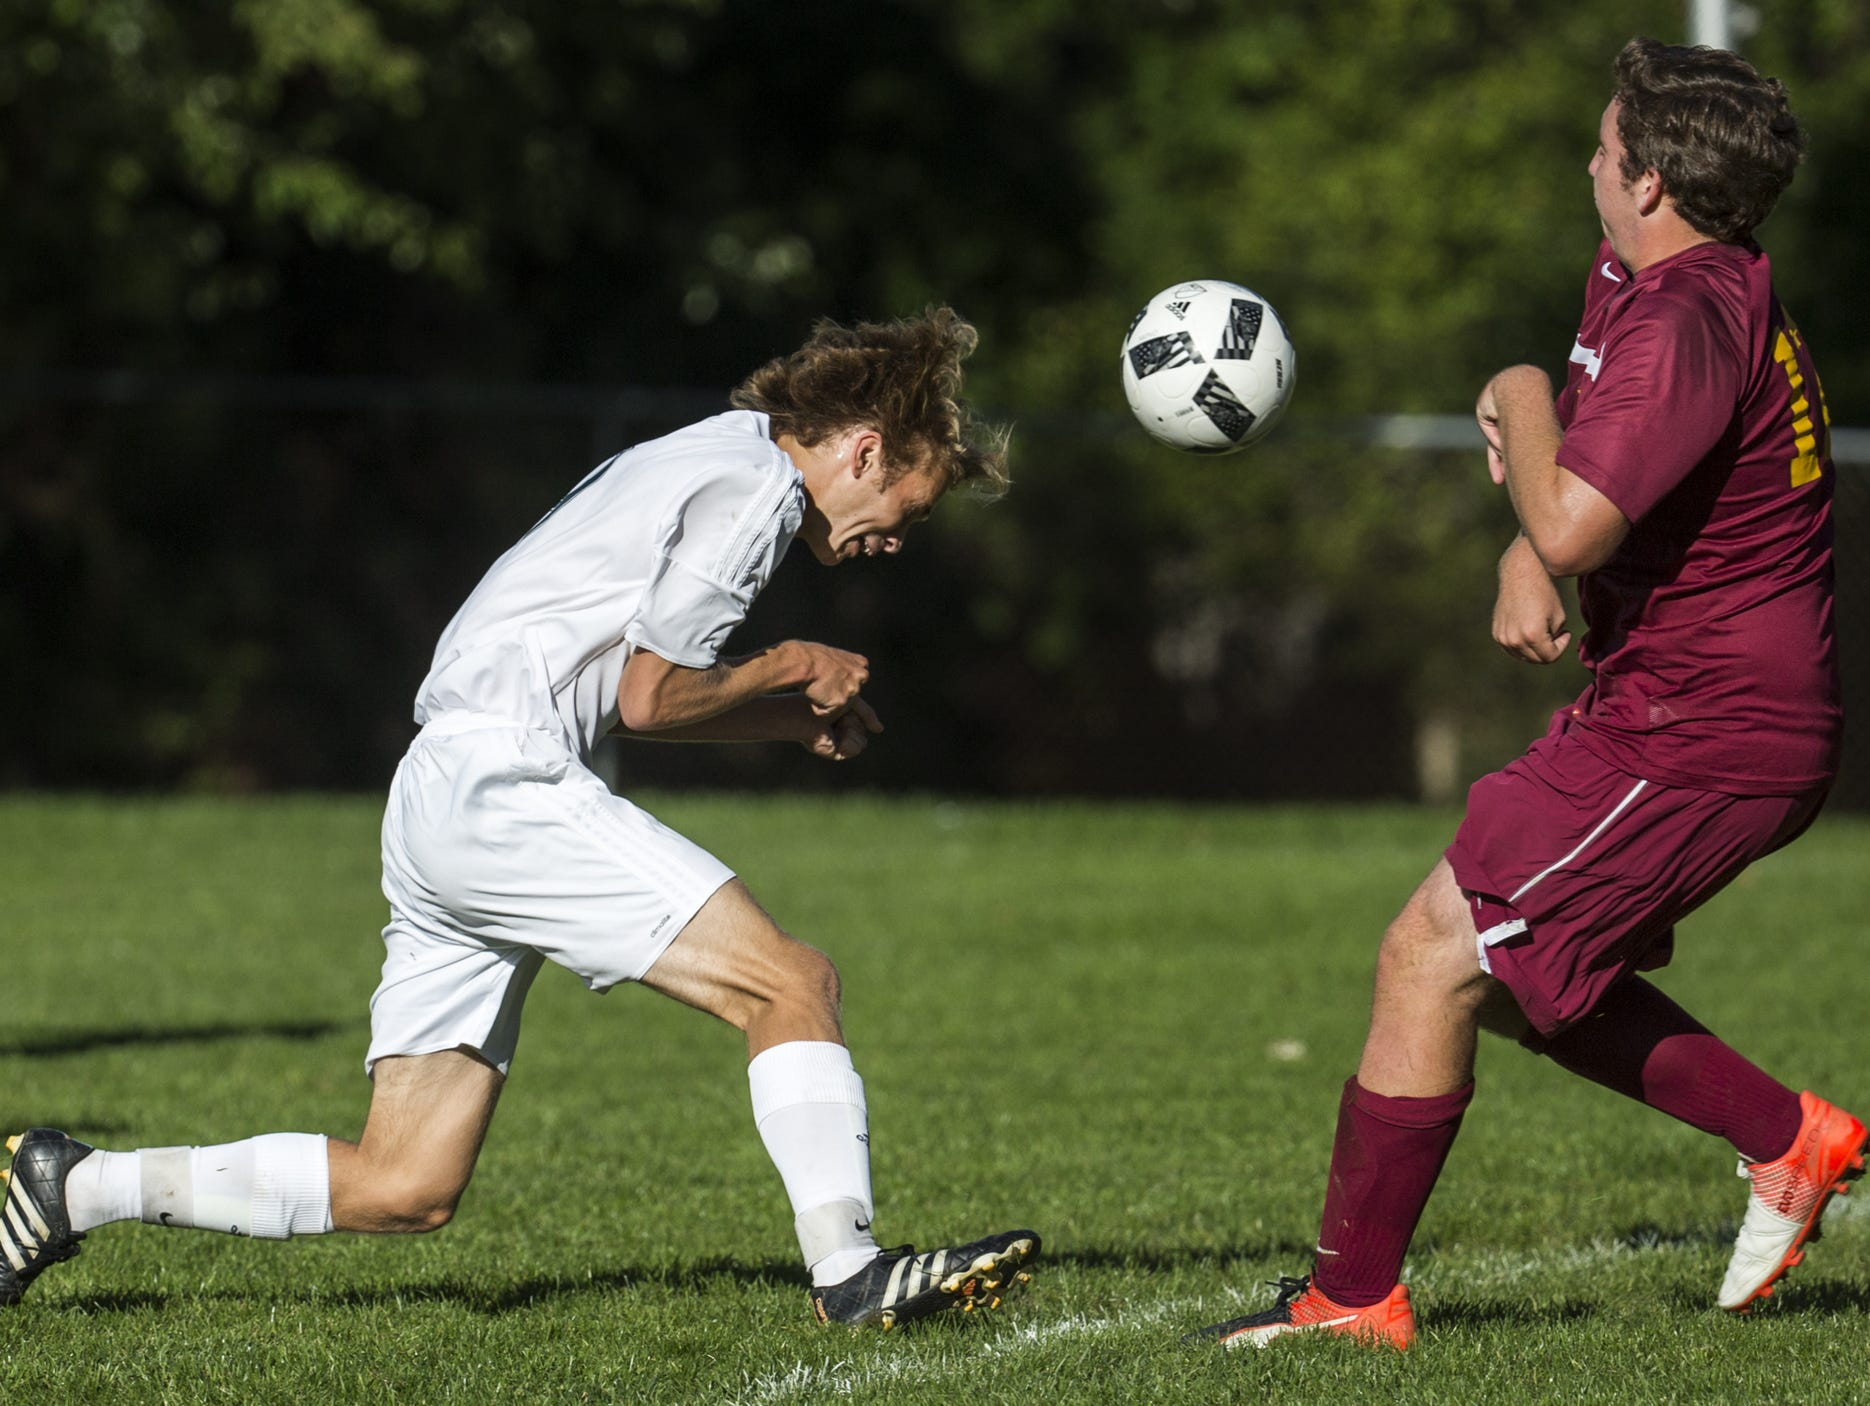 Archmere's Zachary Dainton (left) heads the ball past St. Elizabeth's Robert Miller during a 4-0 victory last Tuesday. The Auks won twice last week to move to No. 4 in The News Journal's Division II boys soccer rankings.